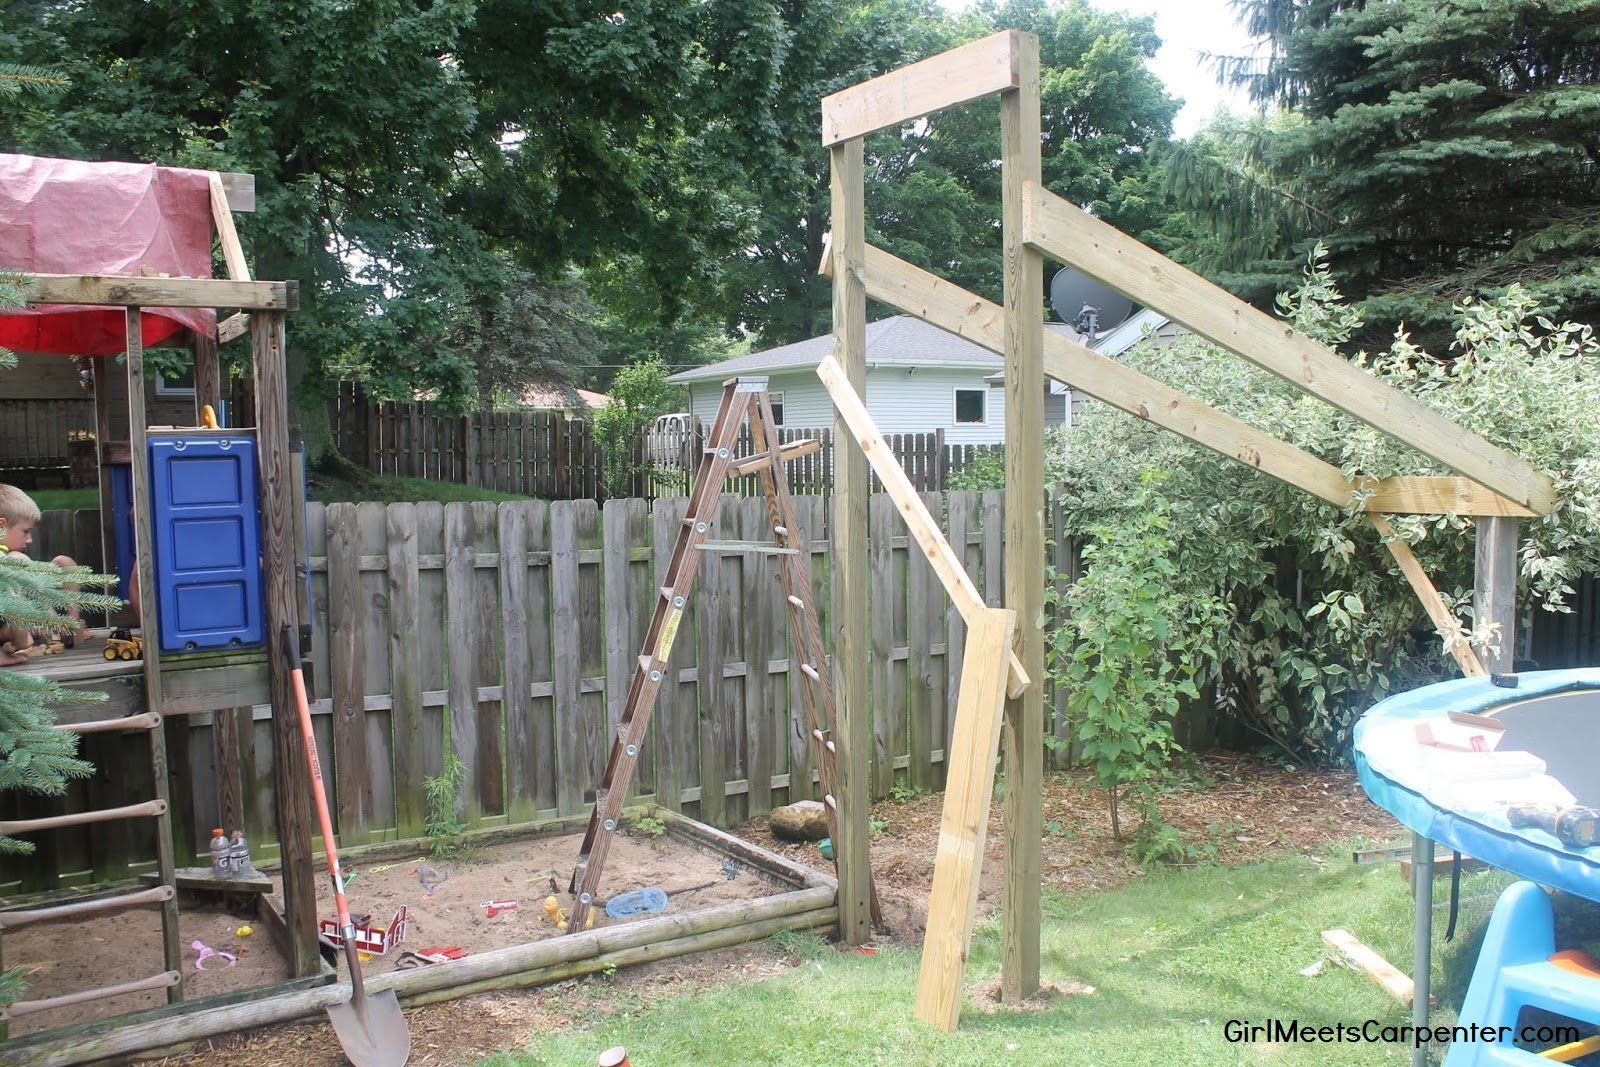 5 Build A Ninja Course In Your Backyard Using Your Existing Swing